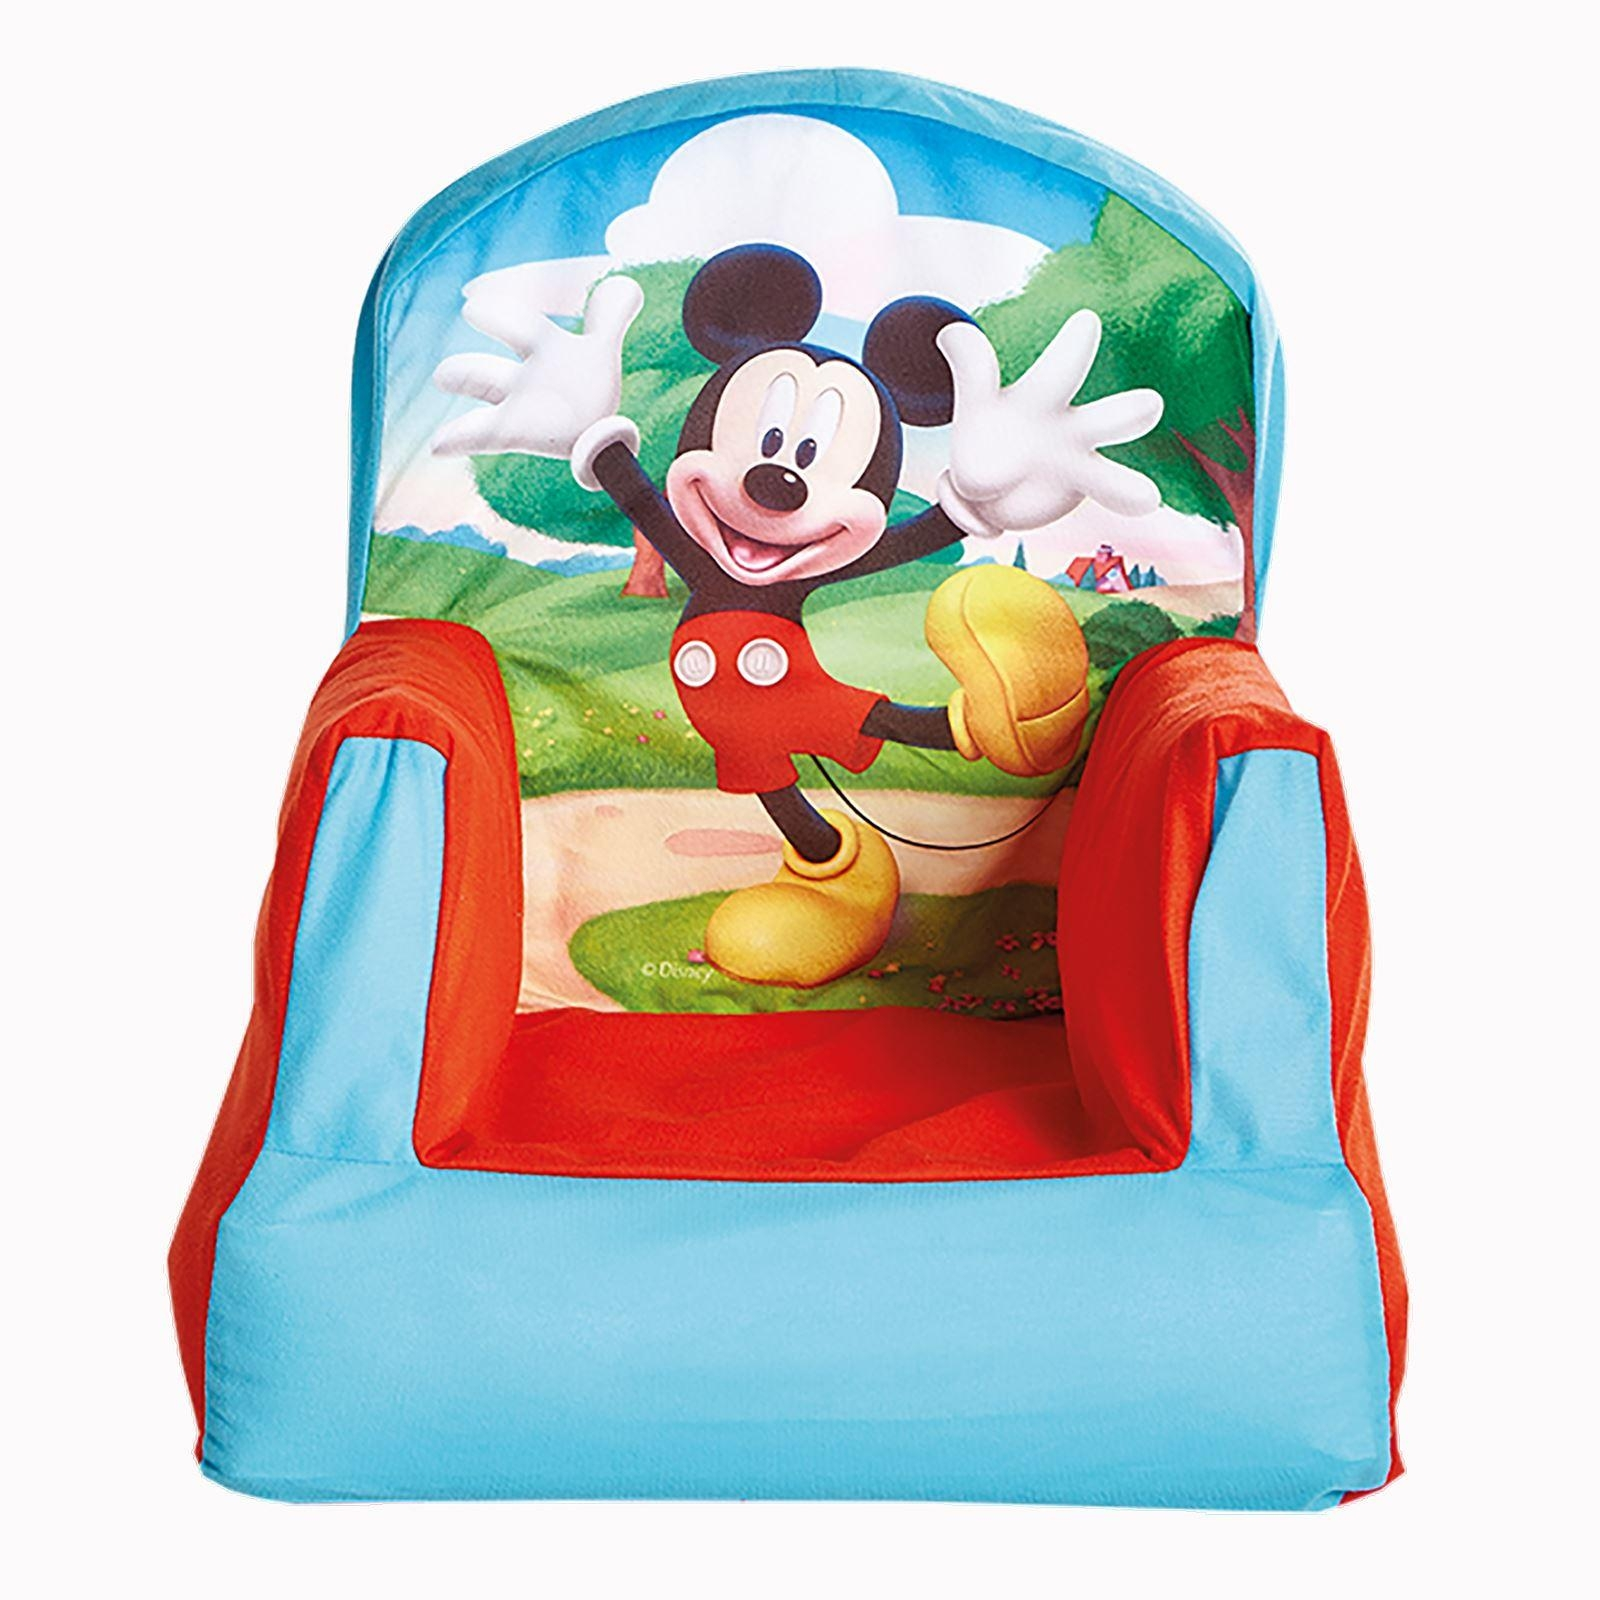 Mickey Mouse Clubhouse Sofa With Ideas Hd Photos 22648 | Kengire Pertaining To Mickey Mouse Clubhouse Couches (View 12 of 20)